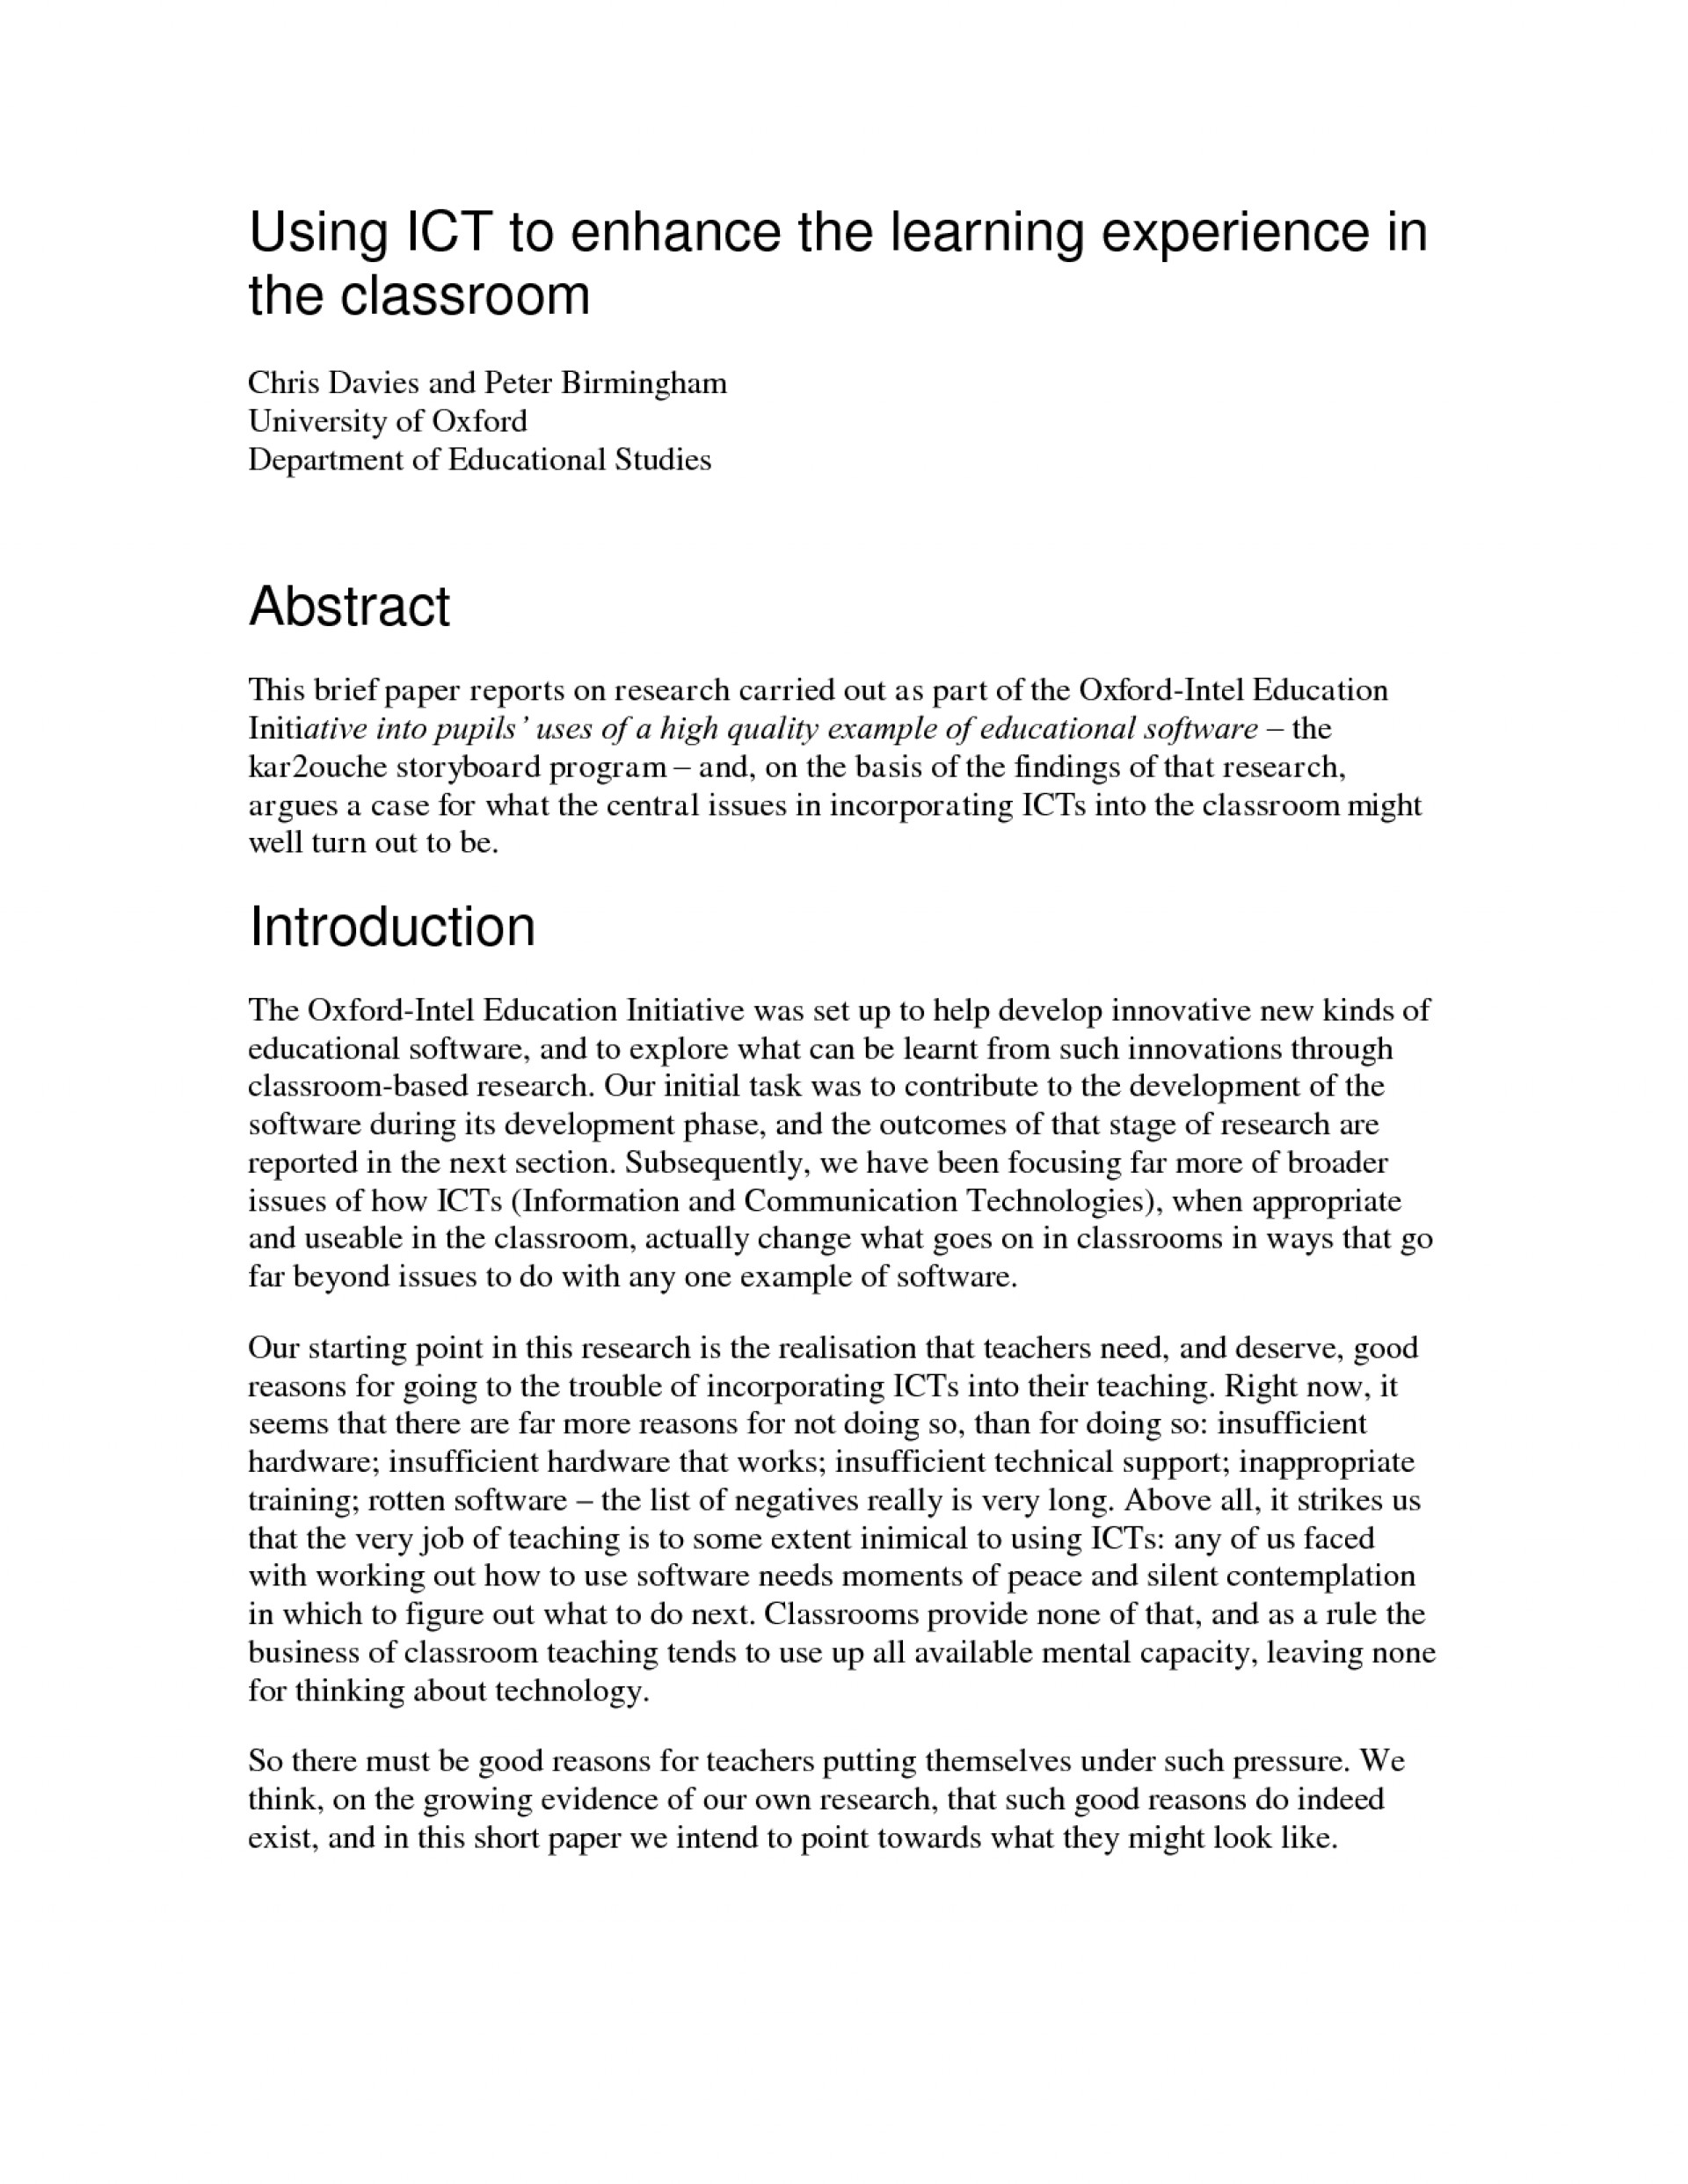 002 Essay Abstract Example Awful Paper Apa Without Research Pdf 1920